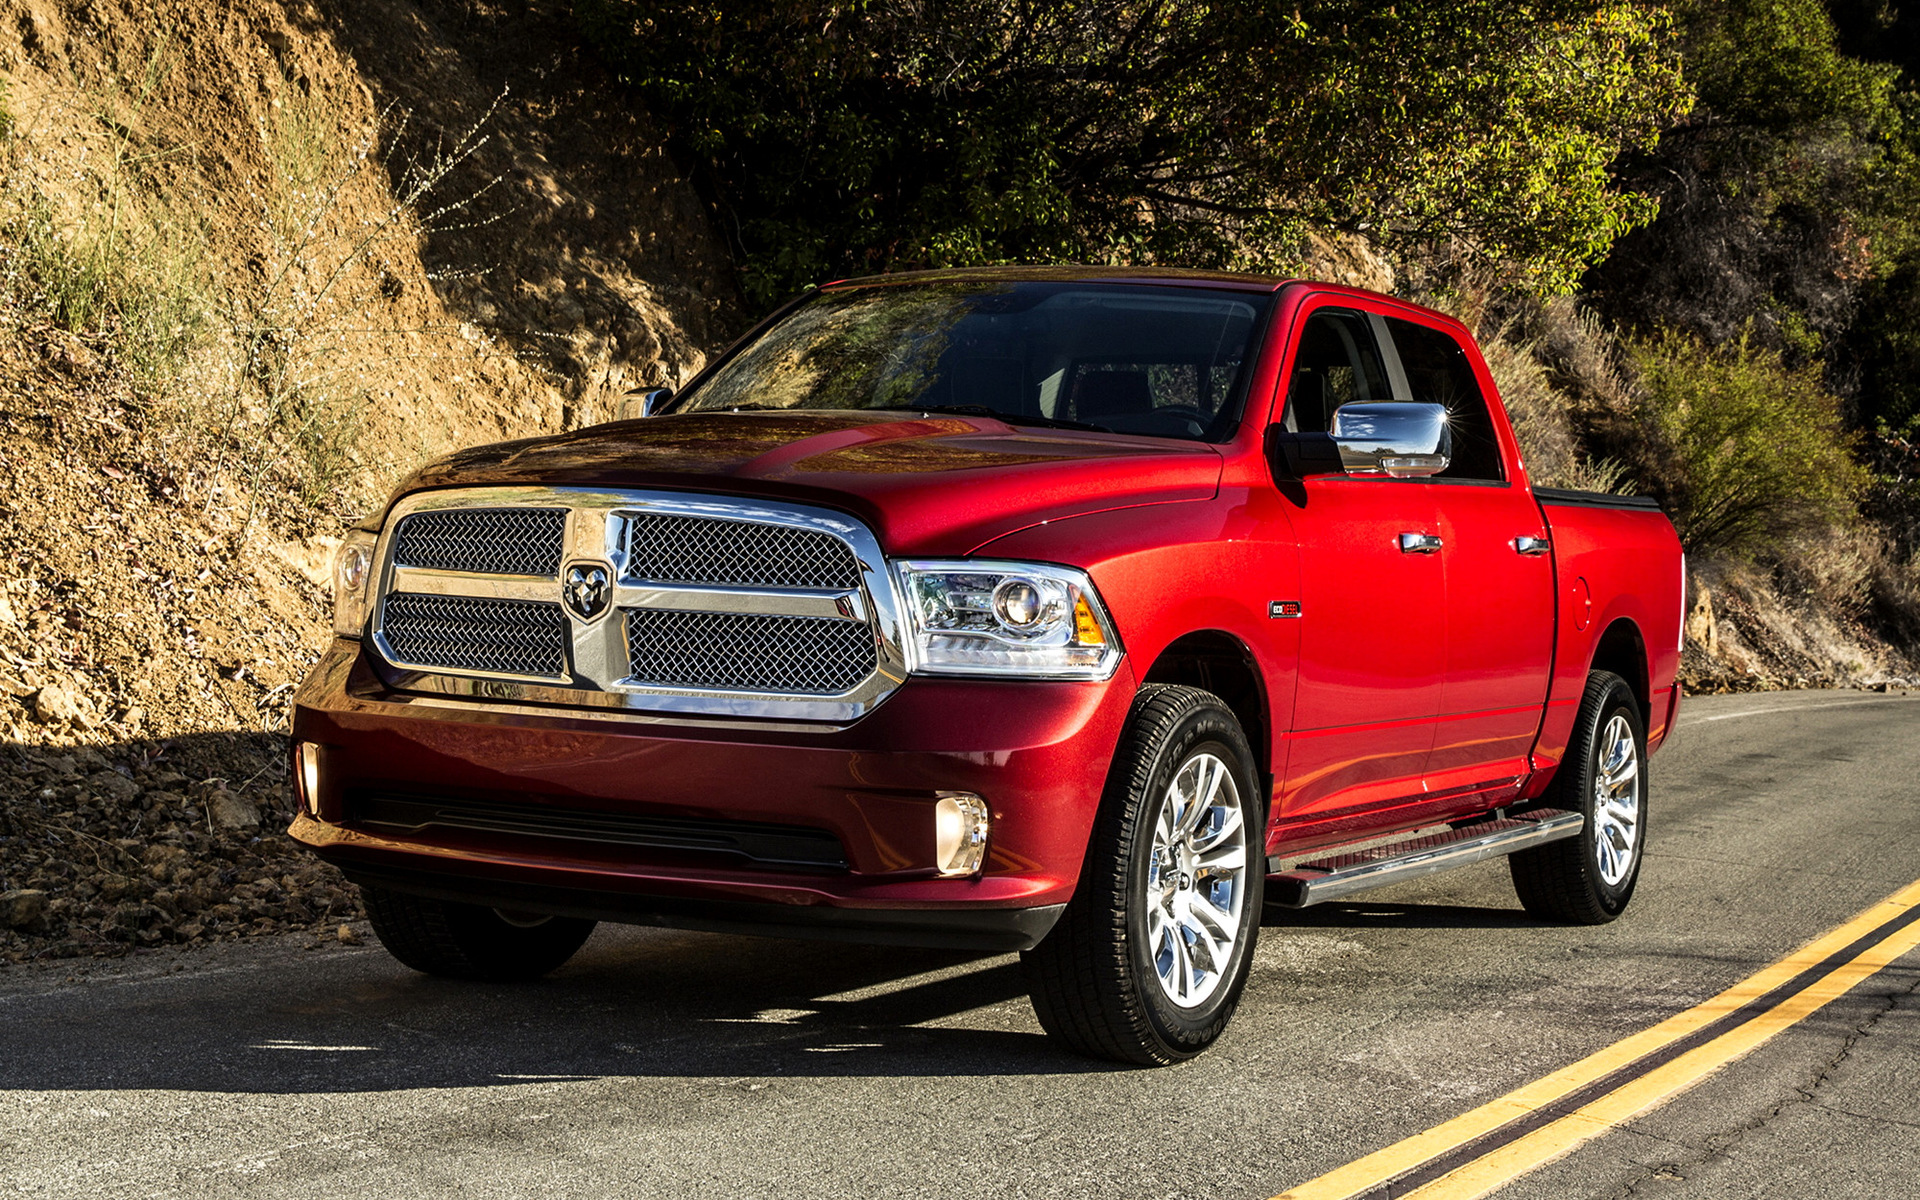 2014 Ram 1500 Laramie Limited Crew Cab Wallpapers And Hd